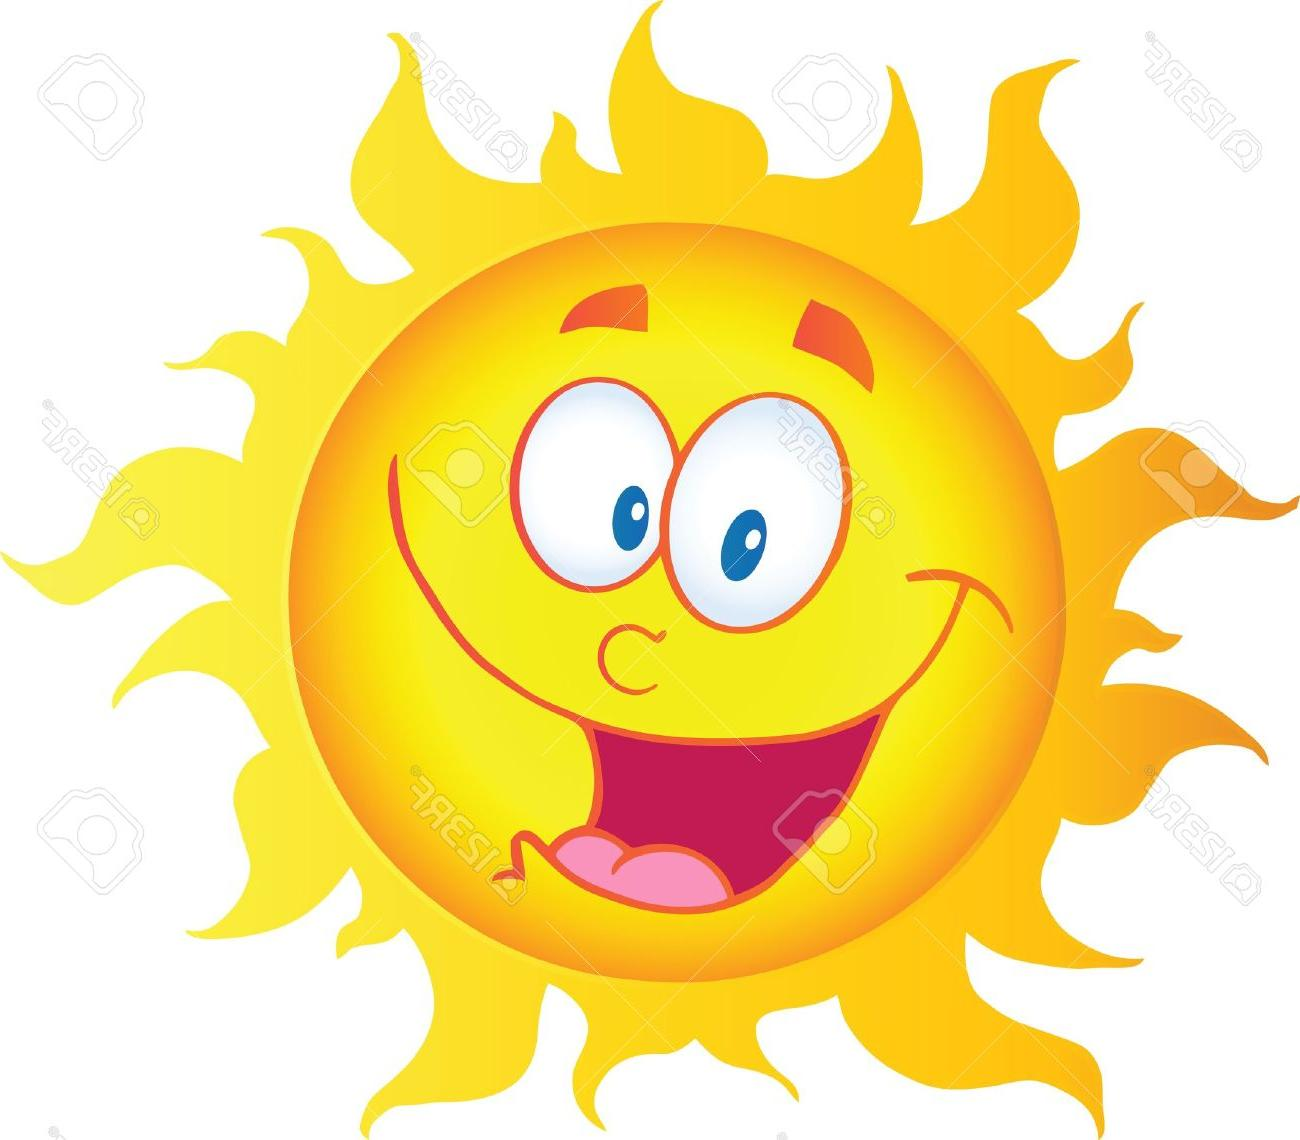 Best Free Sunshine Smiley Face Clip Art Vector Cdr » Free.